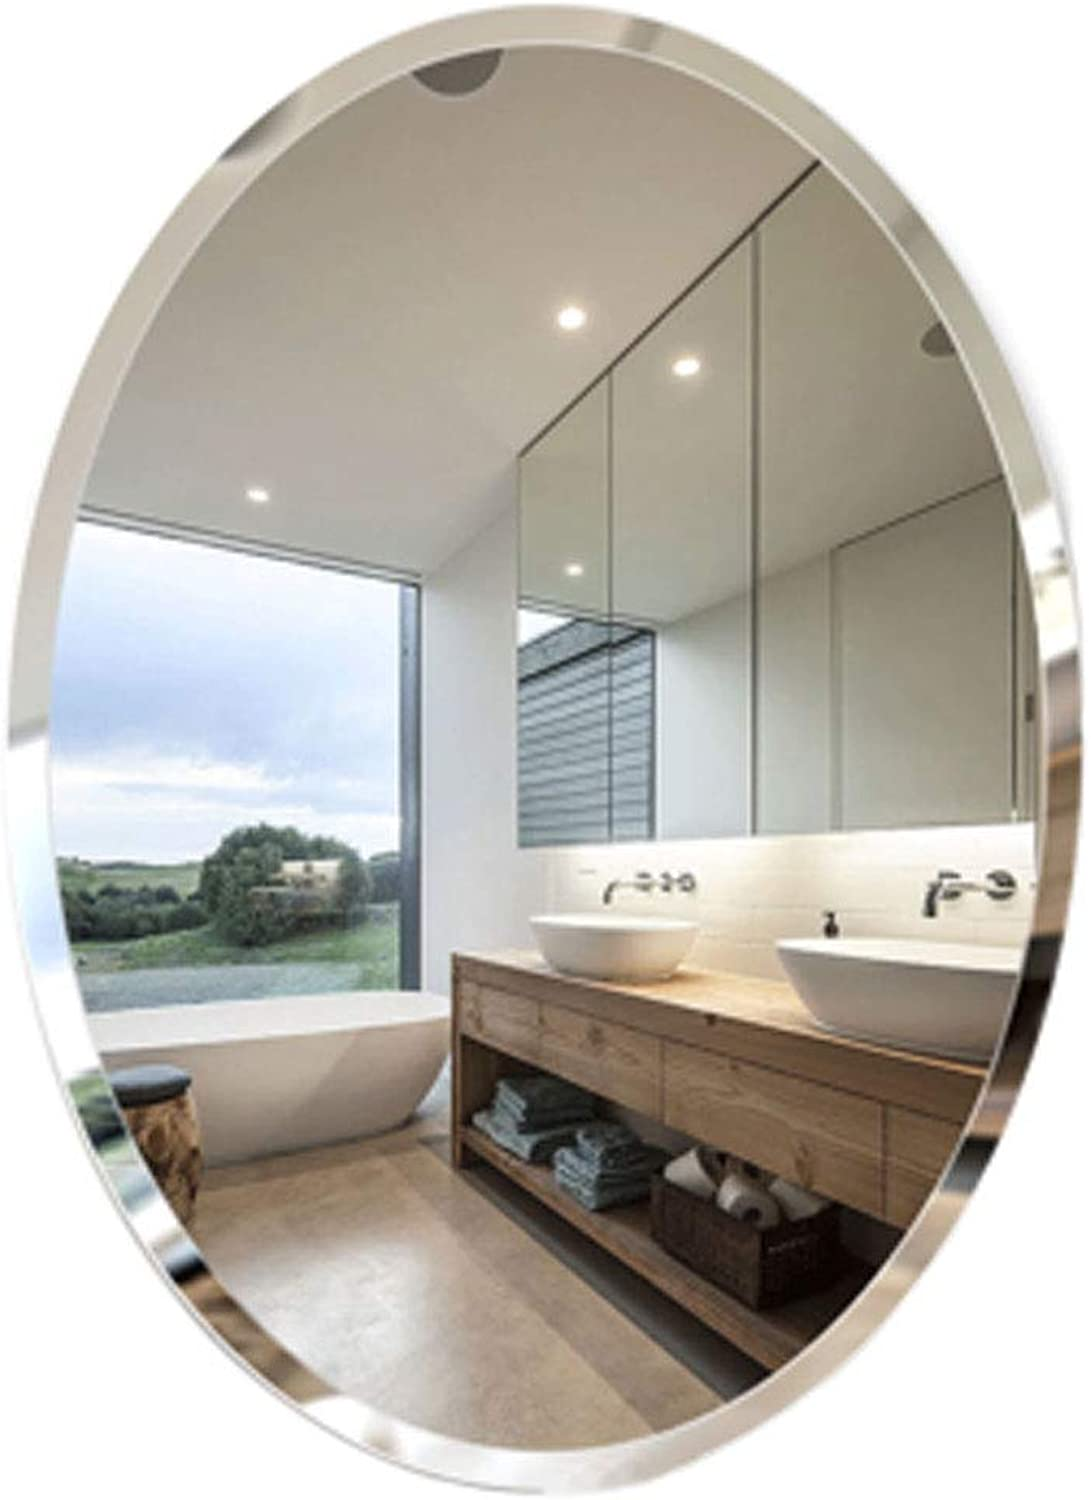 Vanity Mirror Large Circle Wall Mirror Oval Bathroom Vanity Wall Hanging Mirror for Entryways, Washrooms, Living Rooms